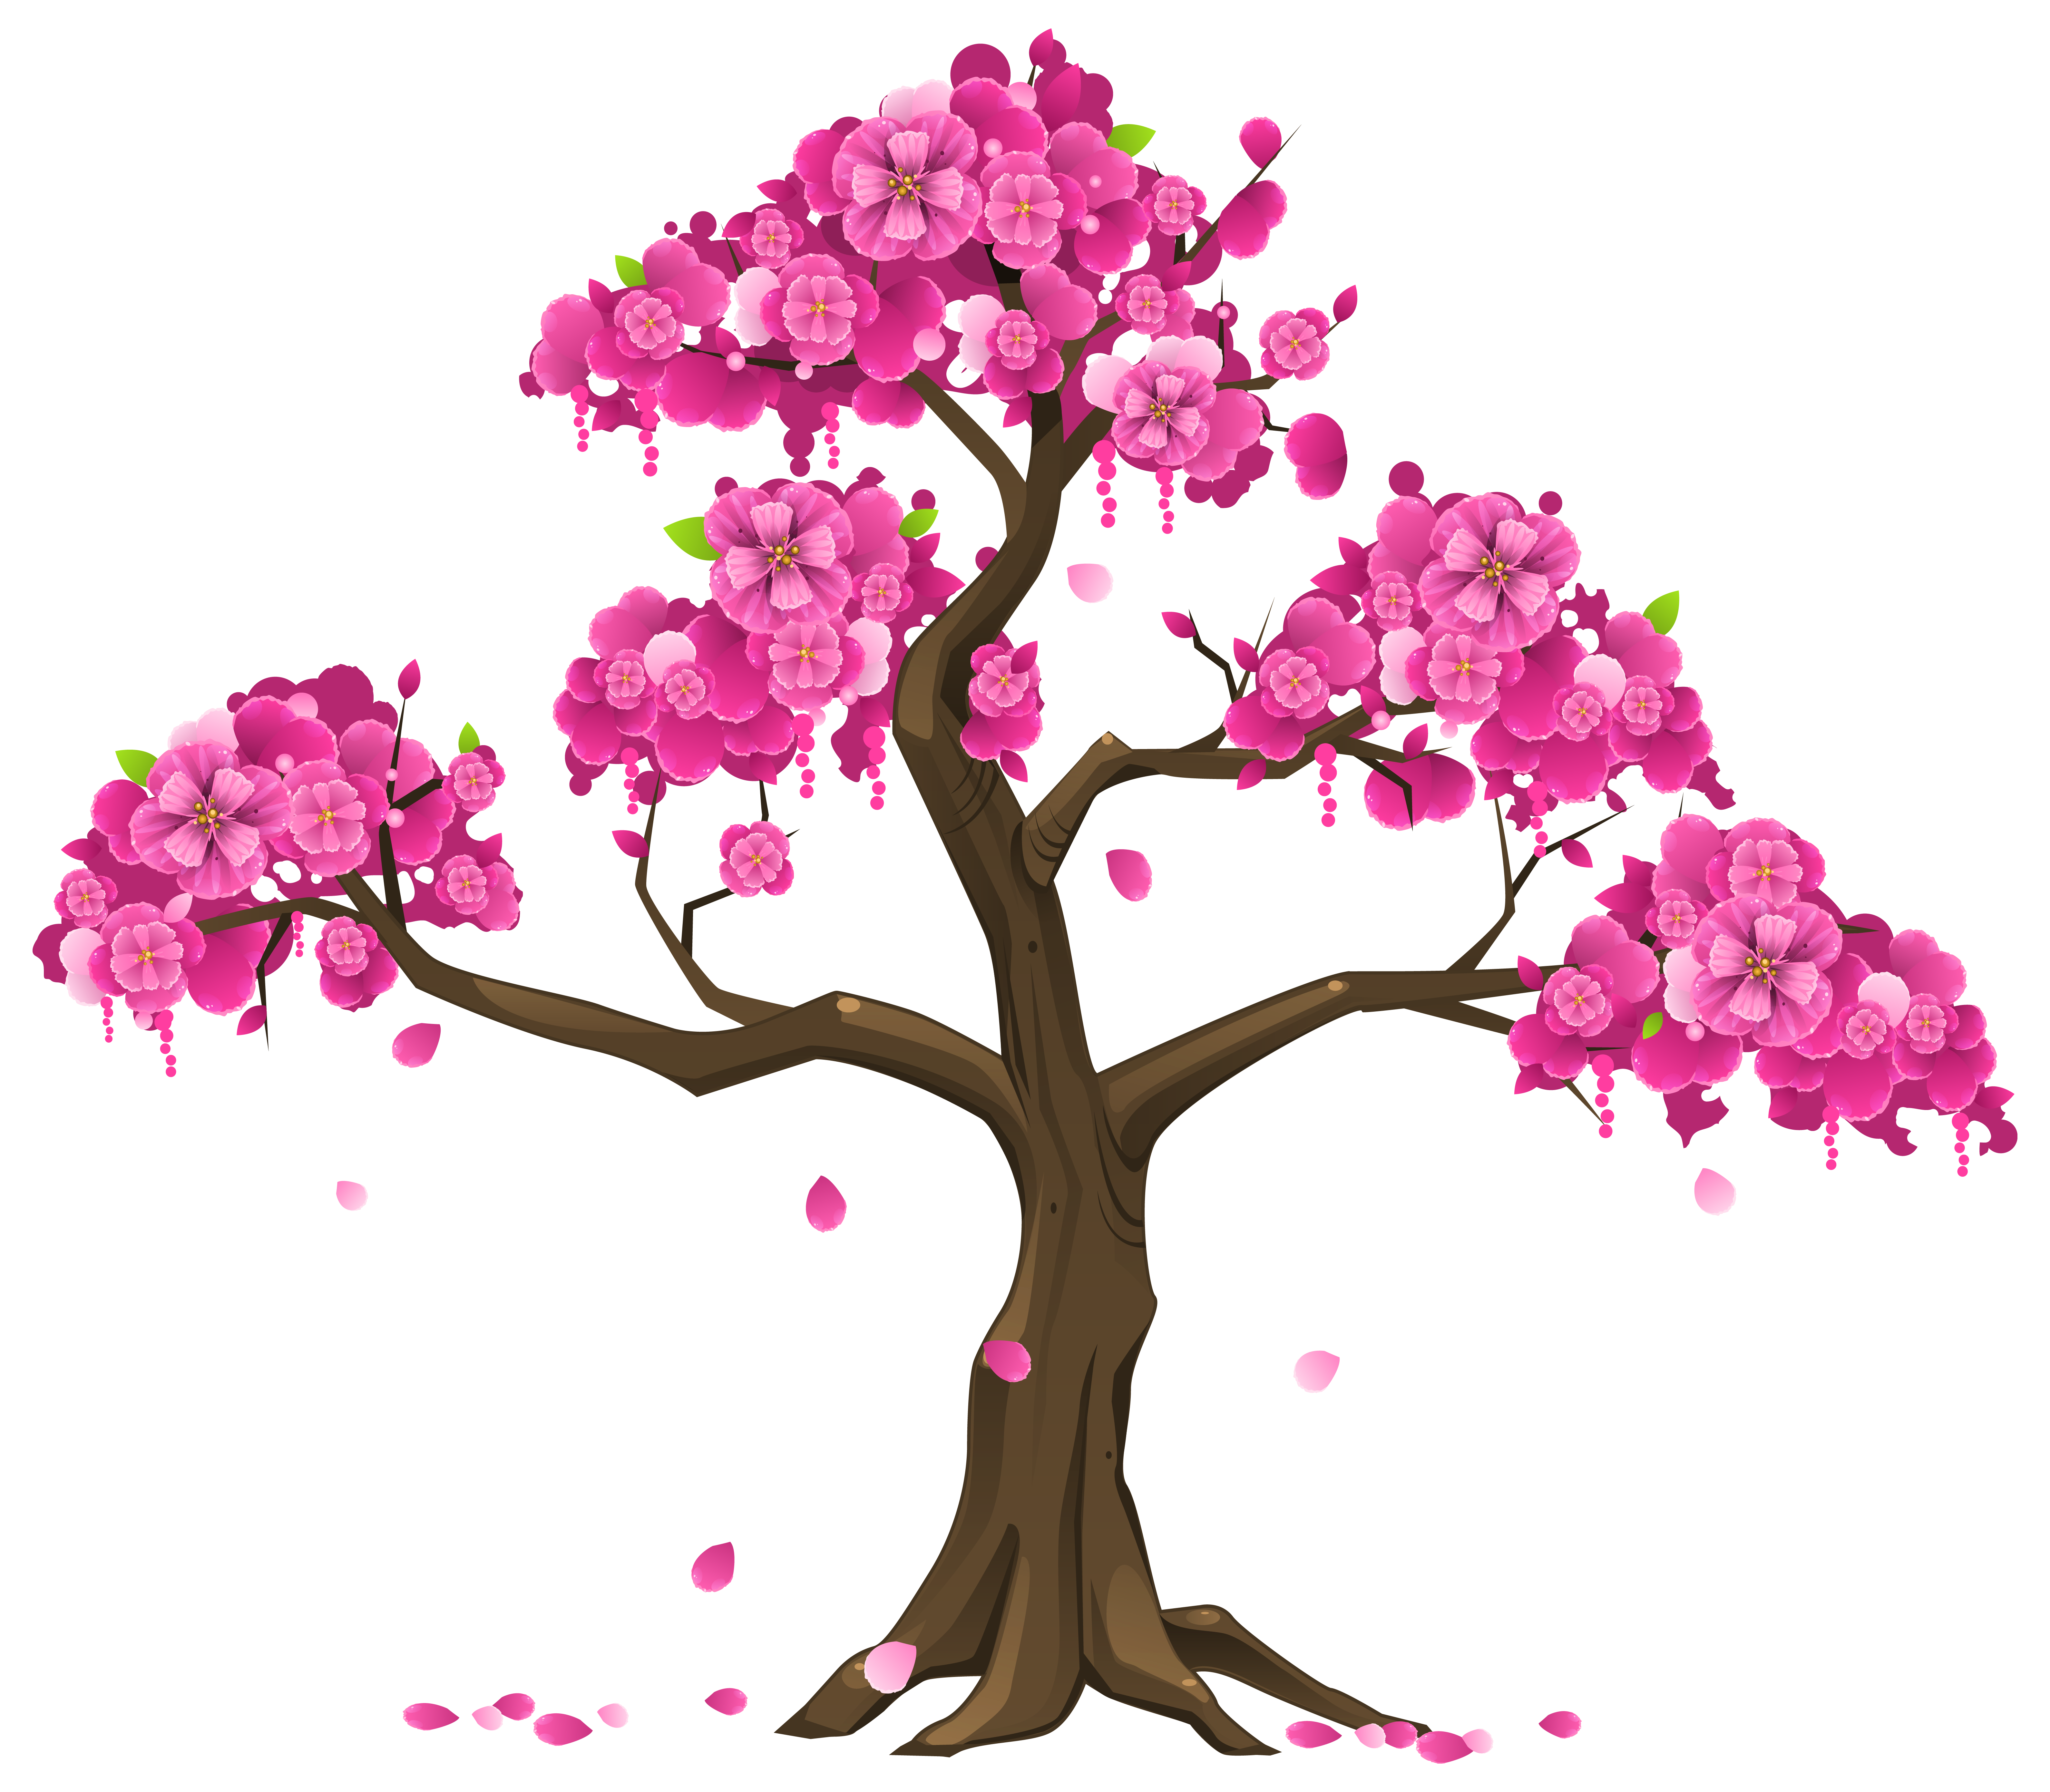 Flower tree png. Pink clipart image gallery